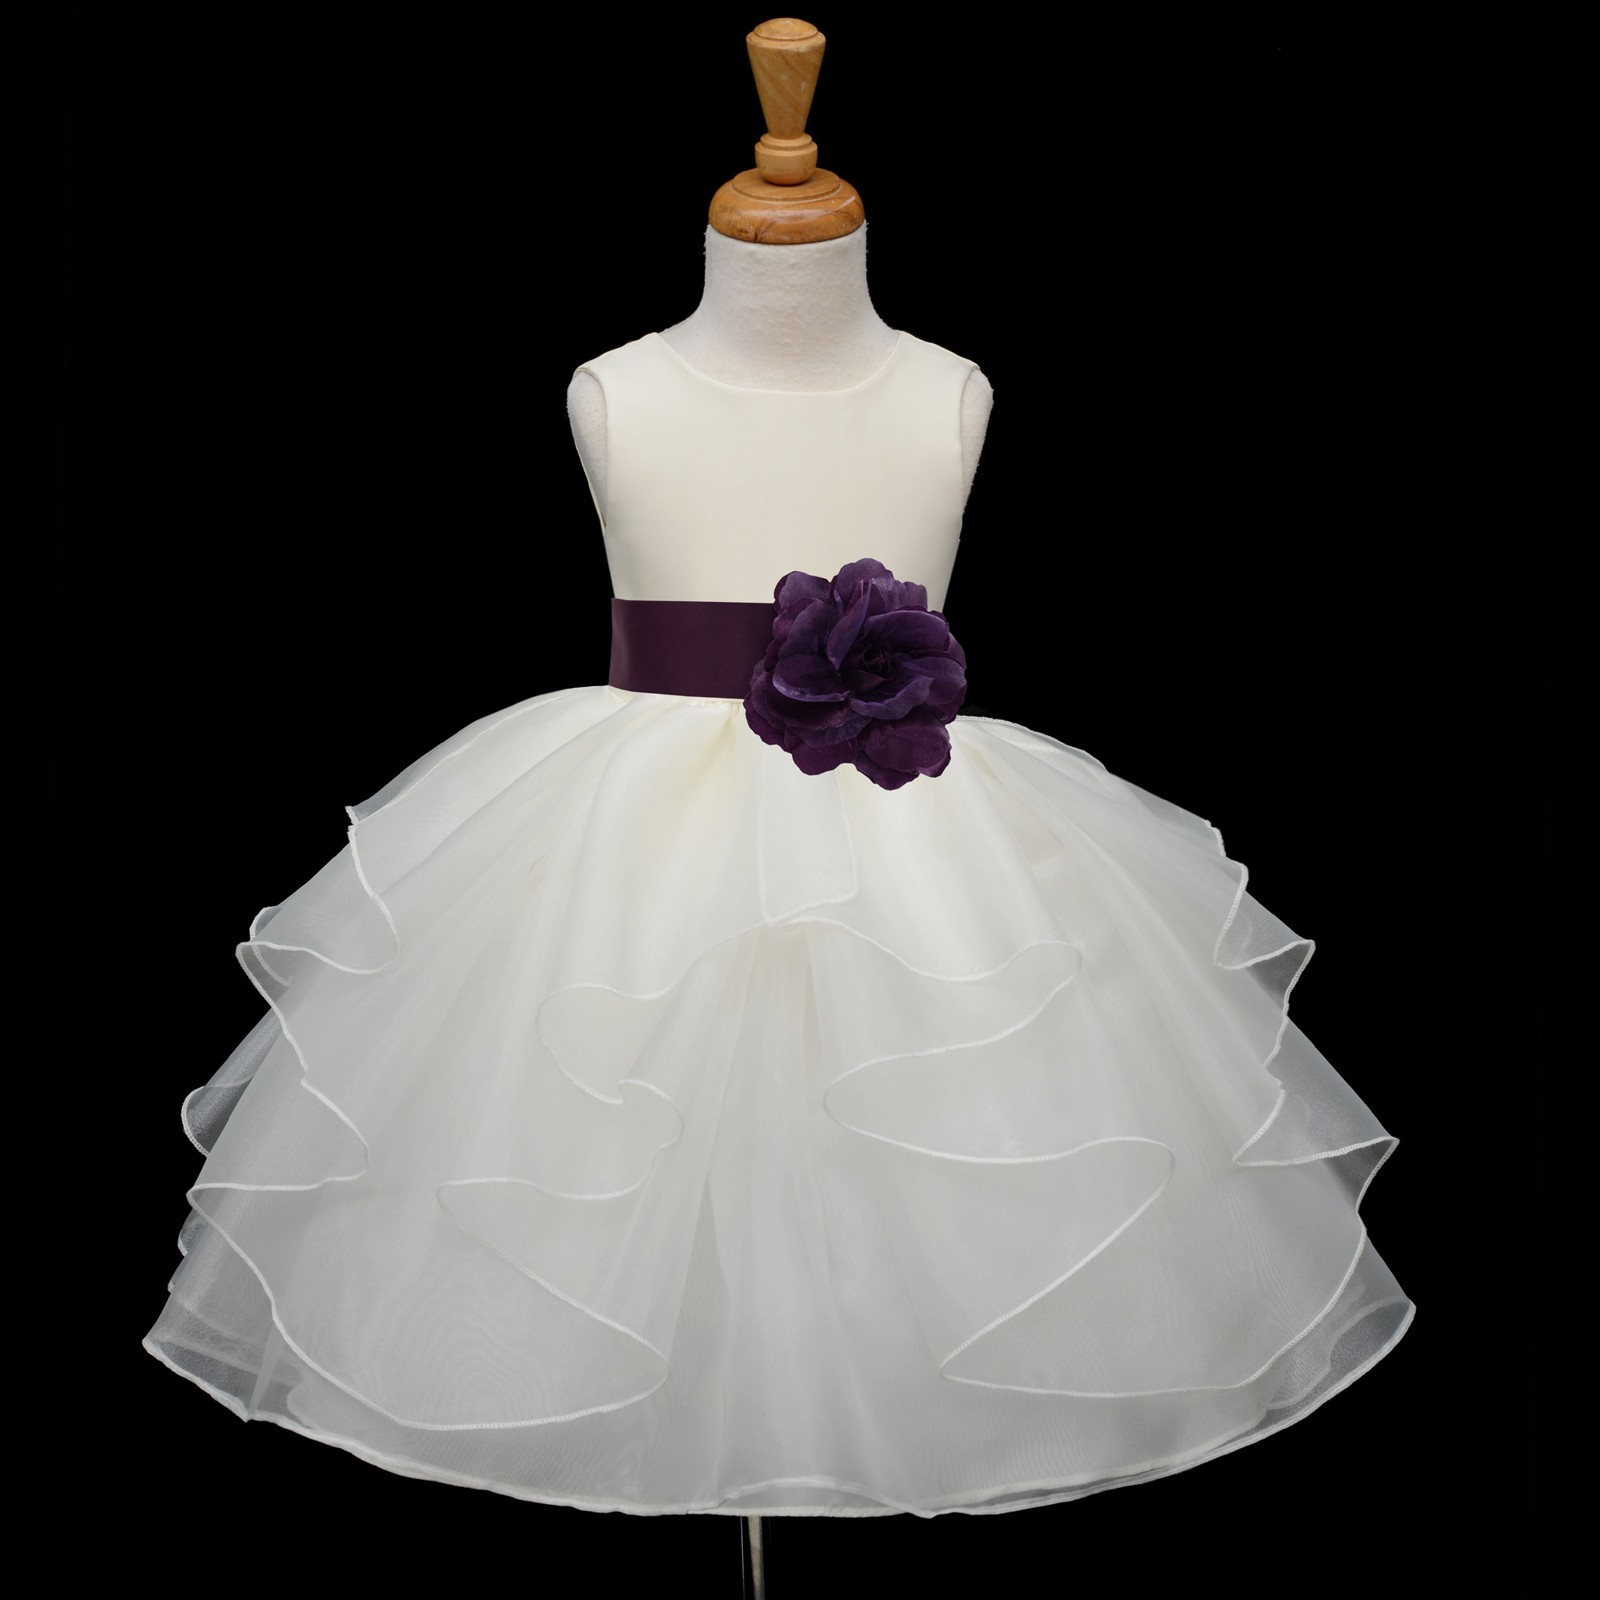 Ivory Plum Satin Shimmering Organza Flower Girl Dress Wedding 4613s Ivory Dresses S Sashes Tiered Organza 4613,Beach Wedding White Dress For Guest